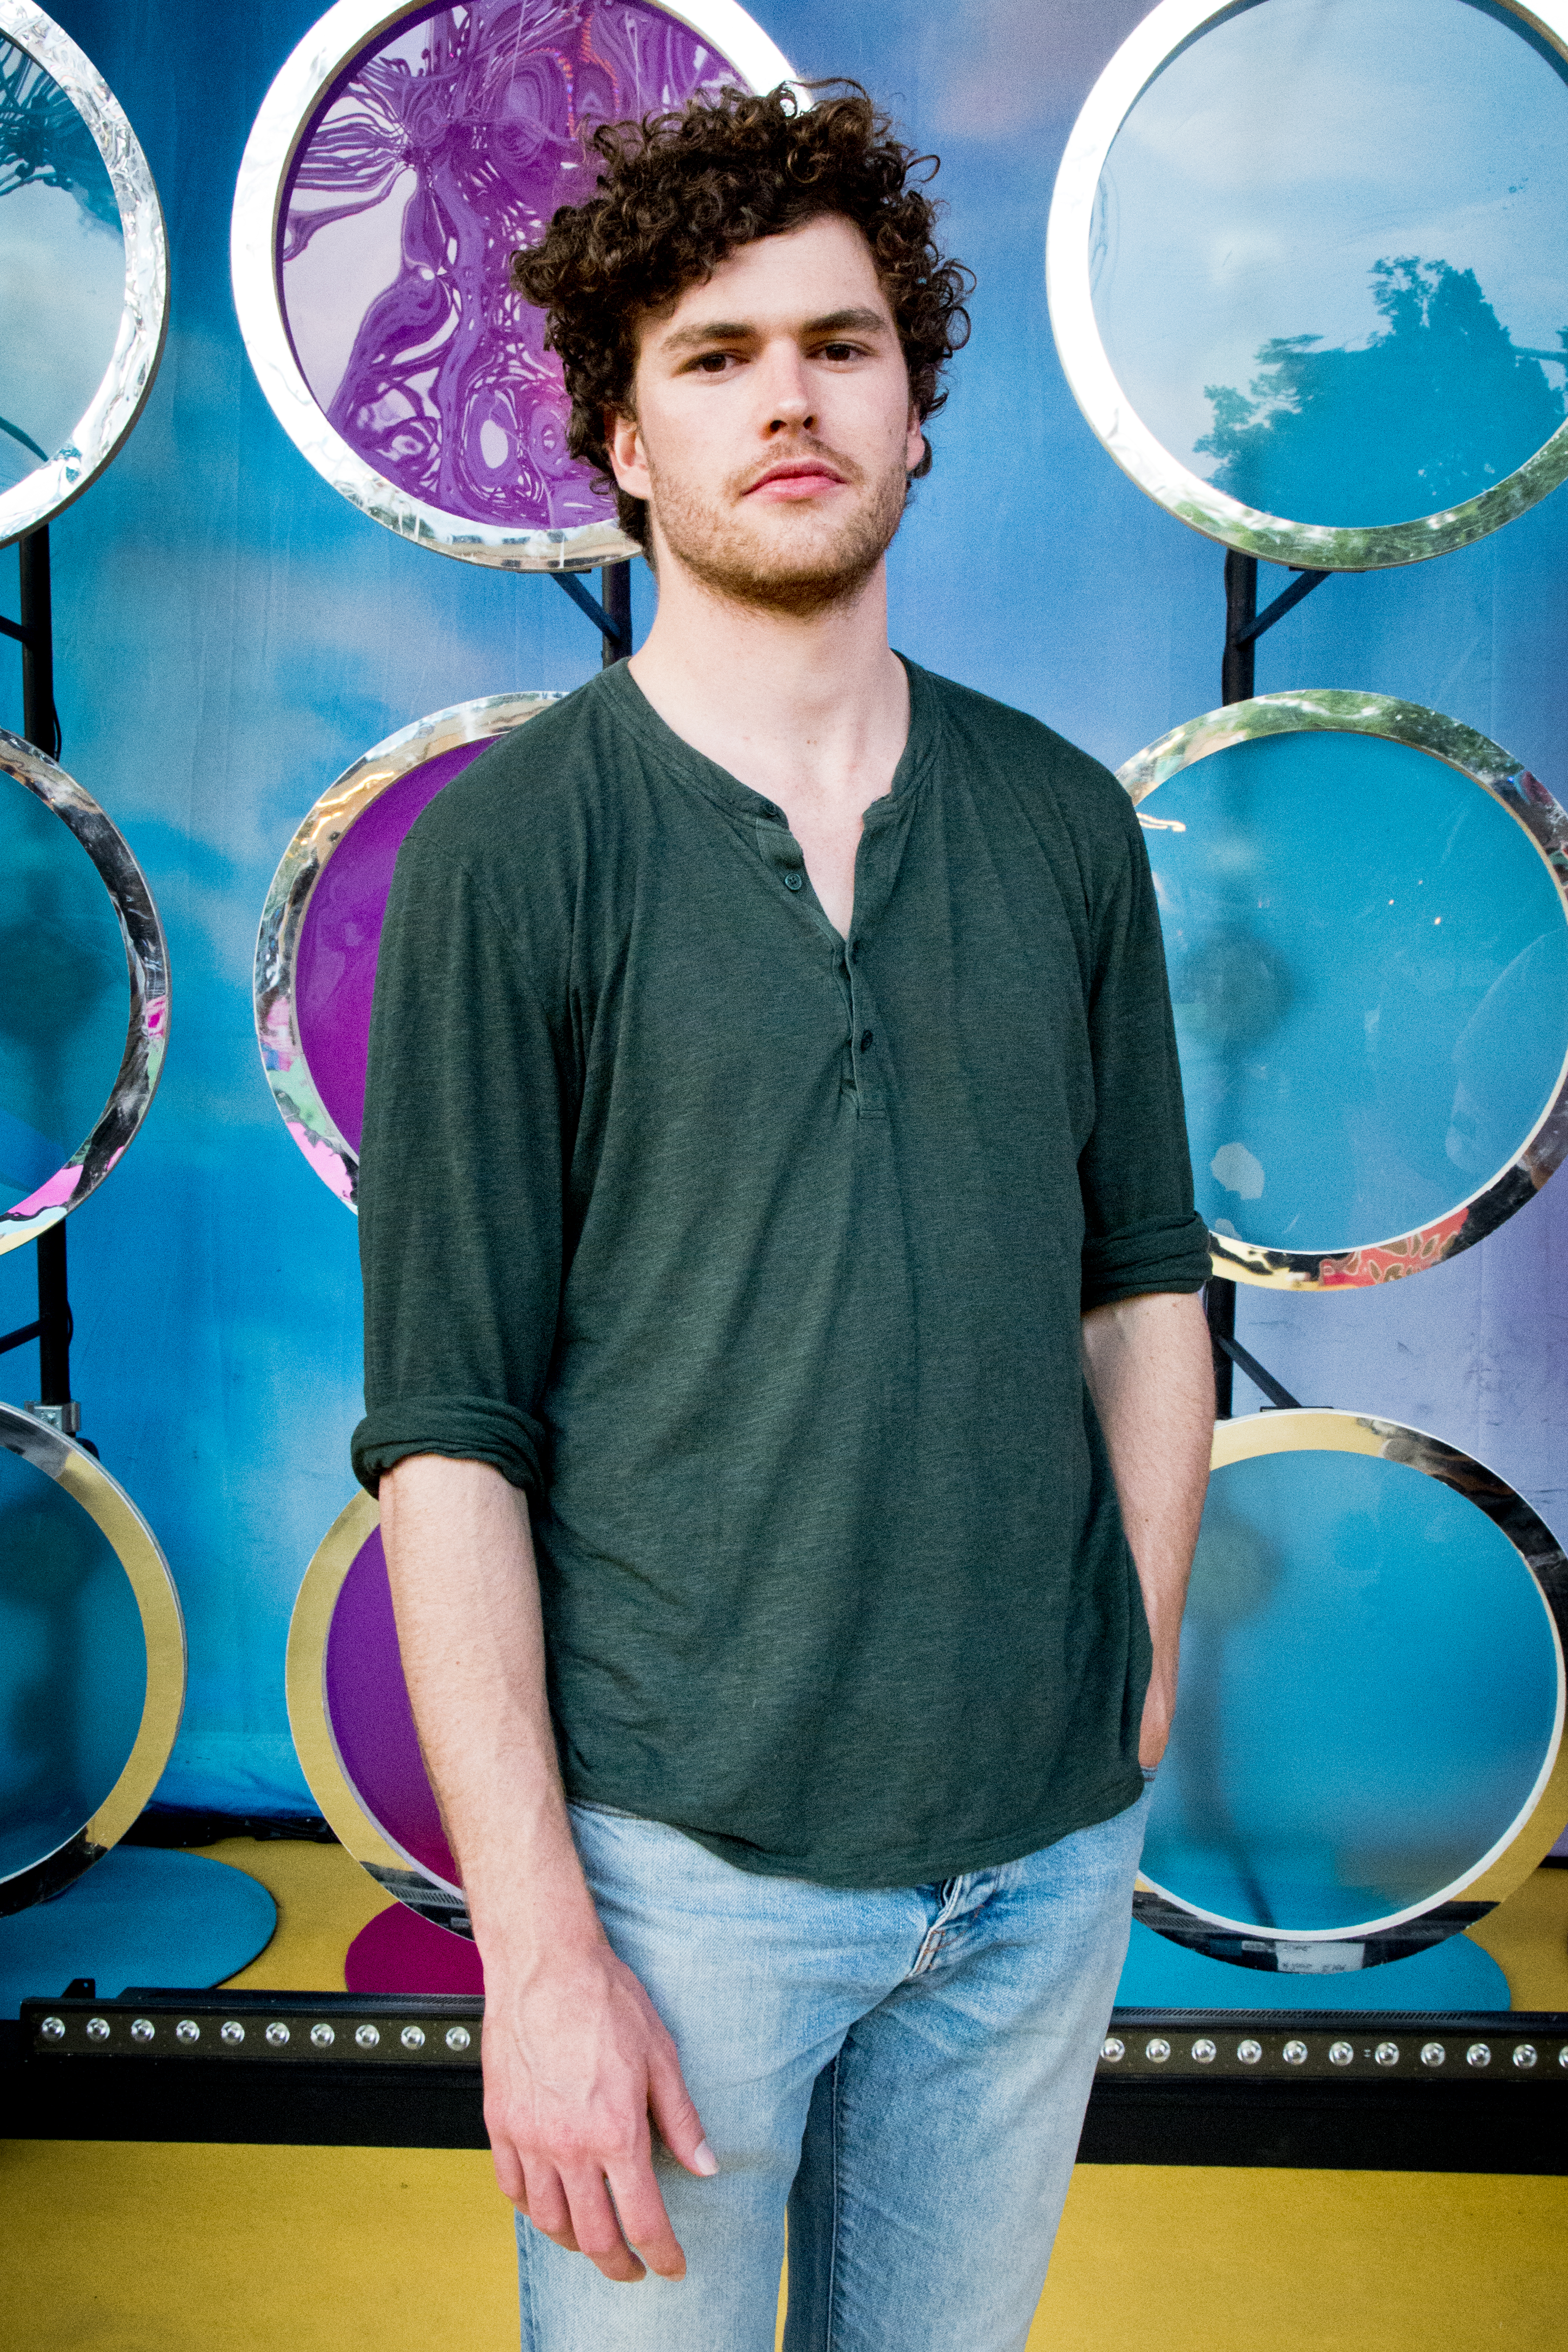 The 29-year old son of father (?) and mother(?), 175 cm tall Vance Joy in 2017 photo